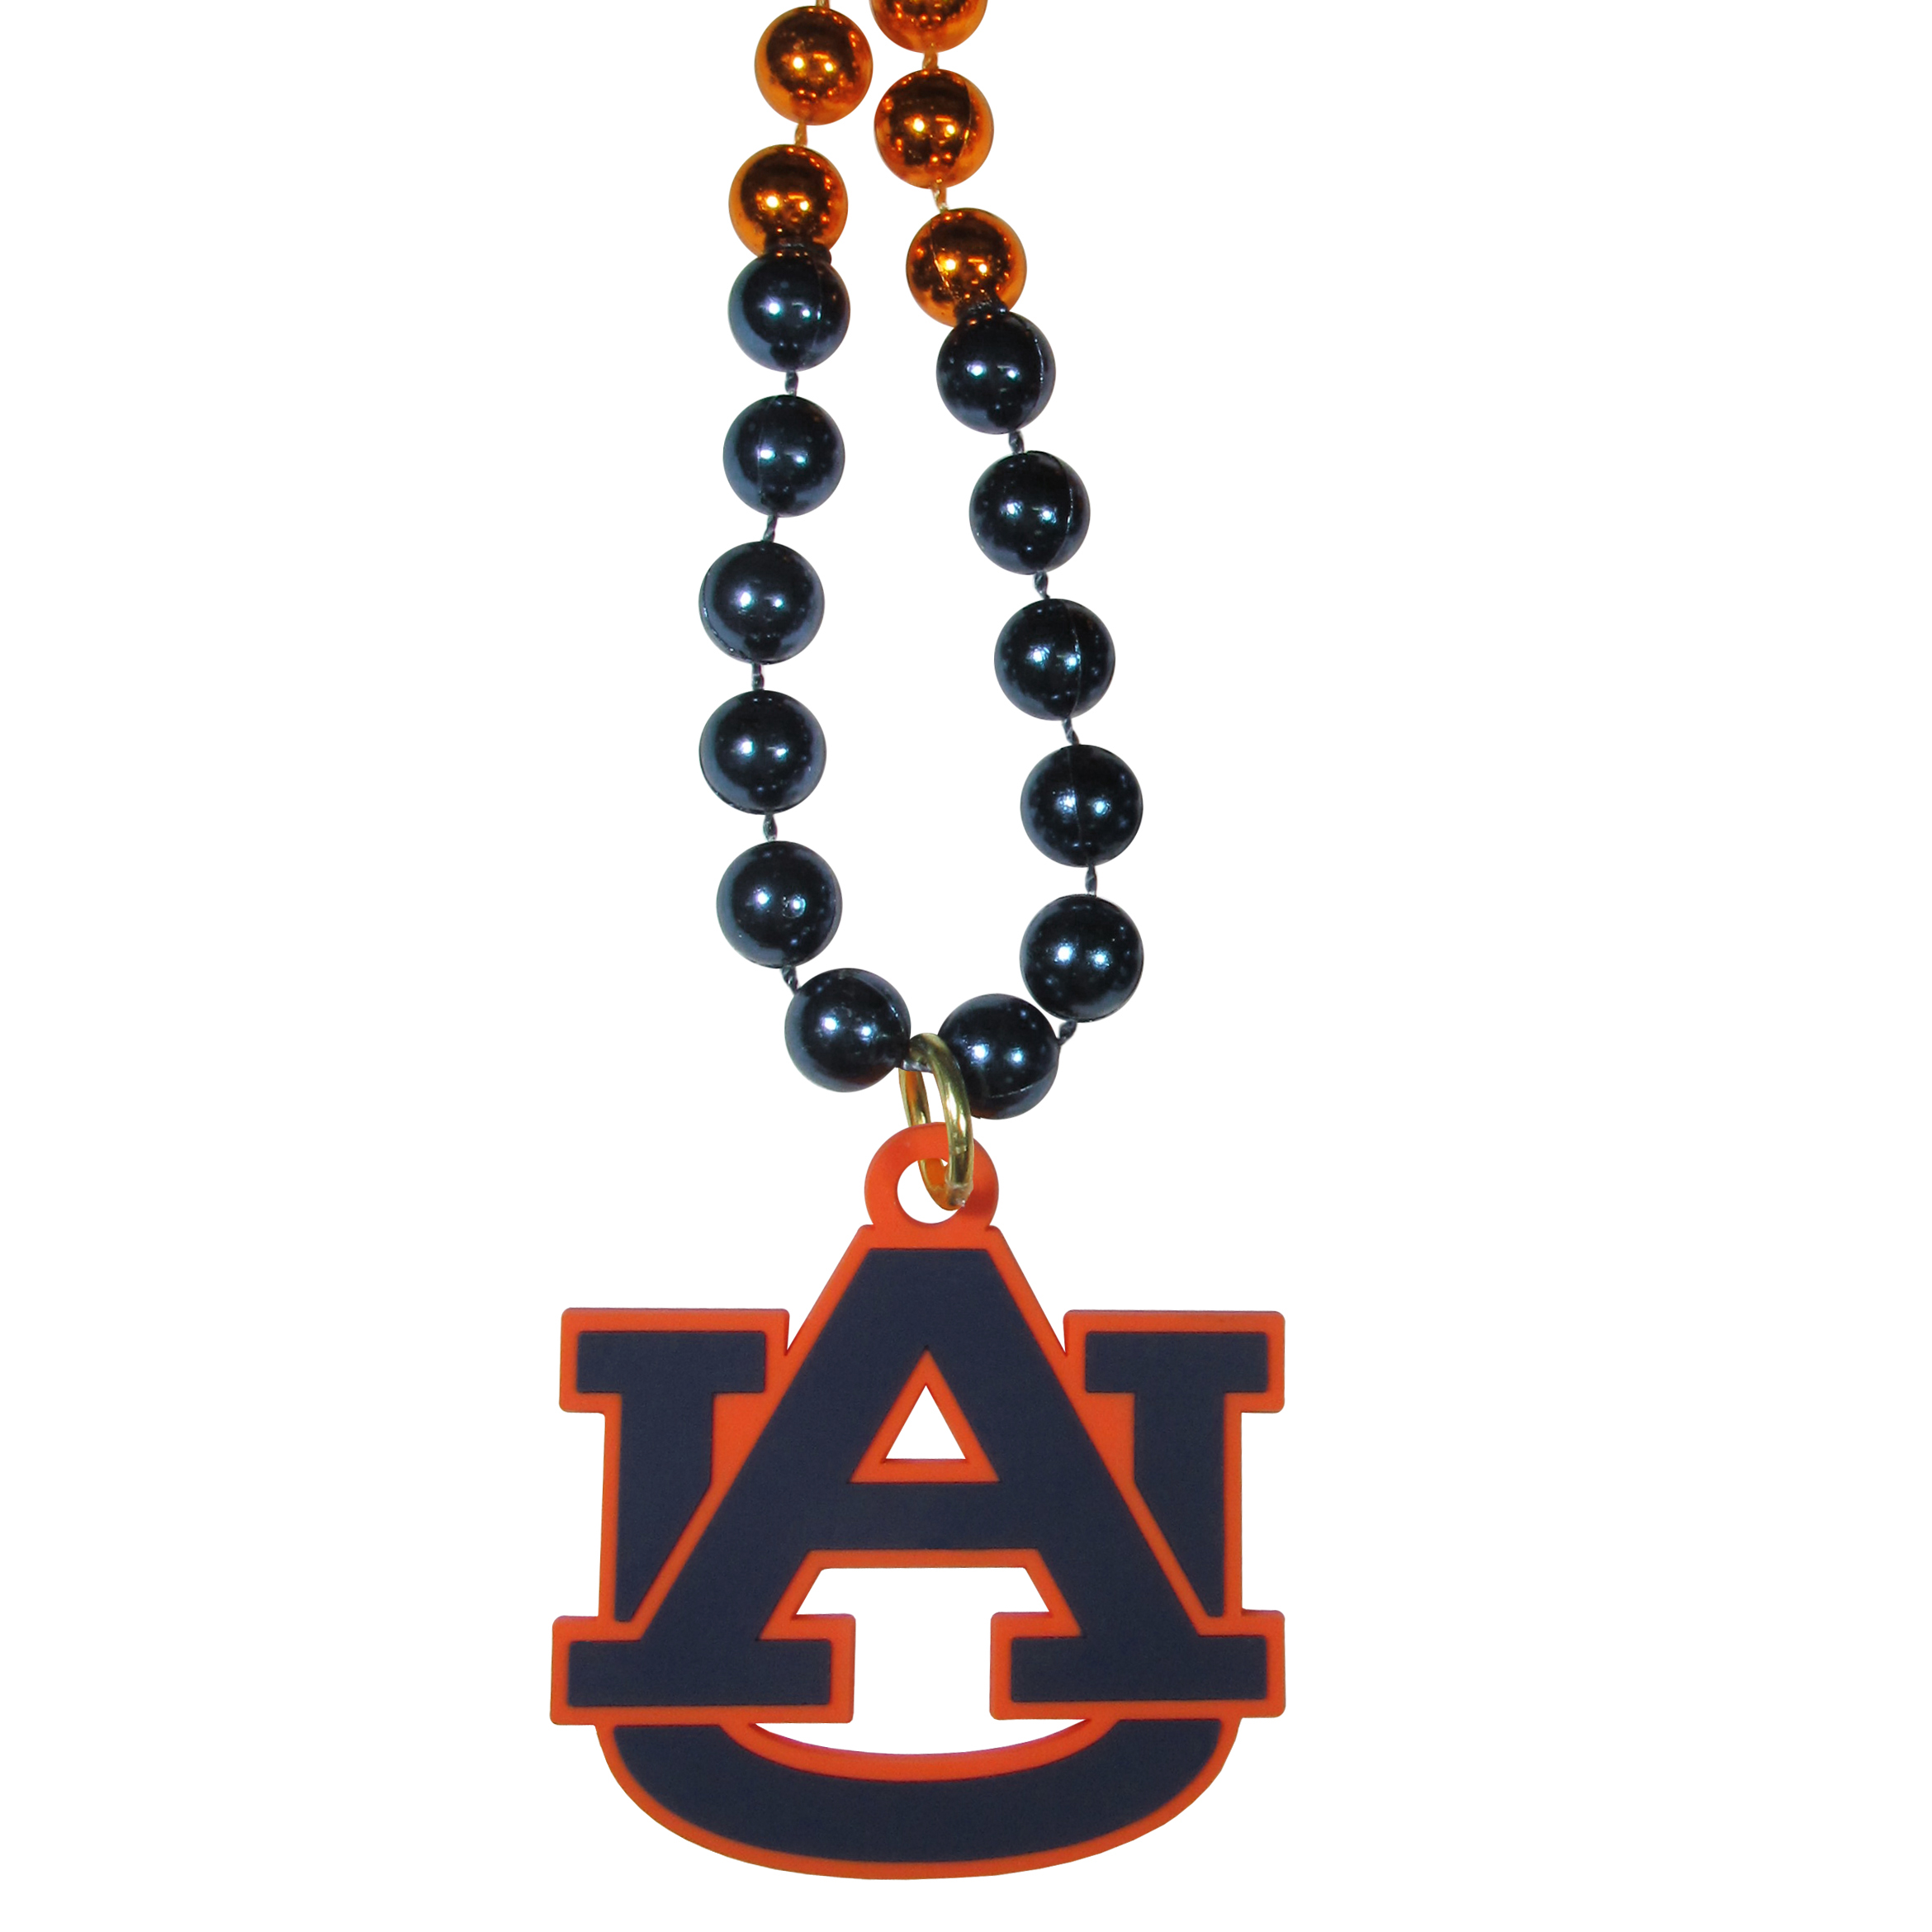 Auburn Tigers Mardi Gras Necklace - Get the party started with this Mardi Gras inspired bead necklace. The flashy beads have a shiny finish and come in bright team colors strung together on a 36 inch string so you can make a big statement on game day! The beads come with an extra large flexible team logo that is a full 3 inches at its widest point. This trendy and bold necklace screams out your Auburn Tigers pride and is a must have at game time!